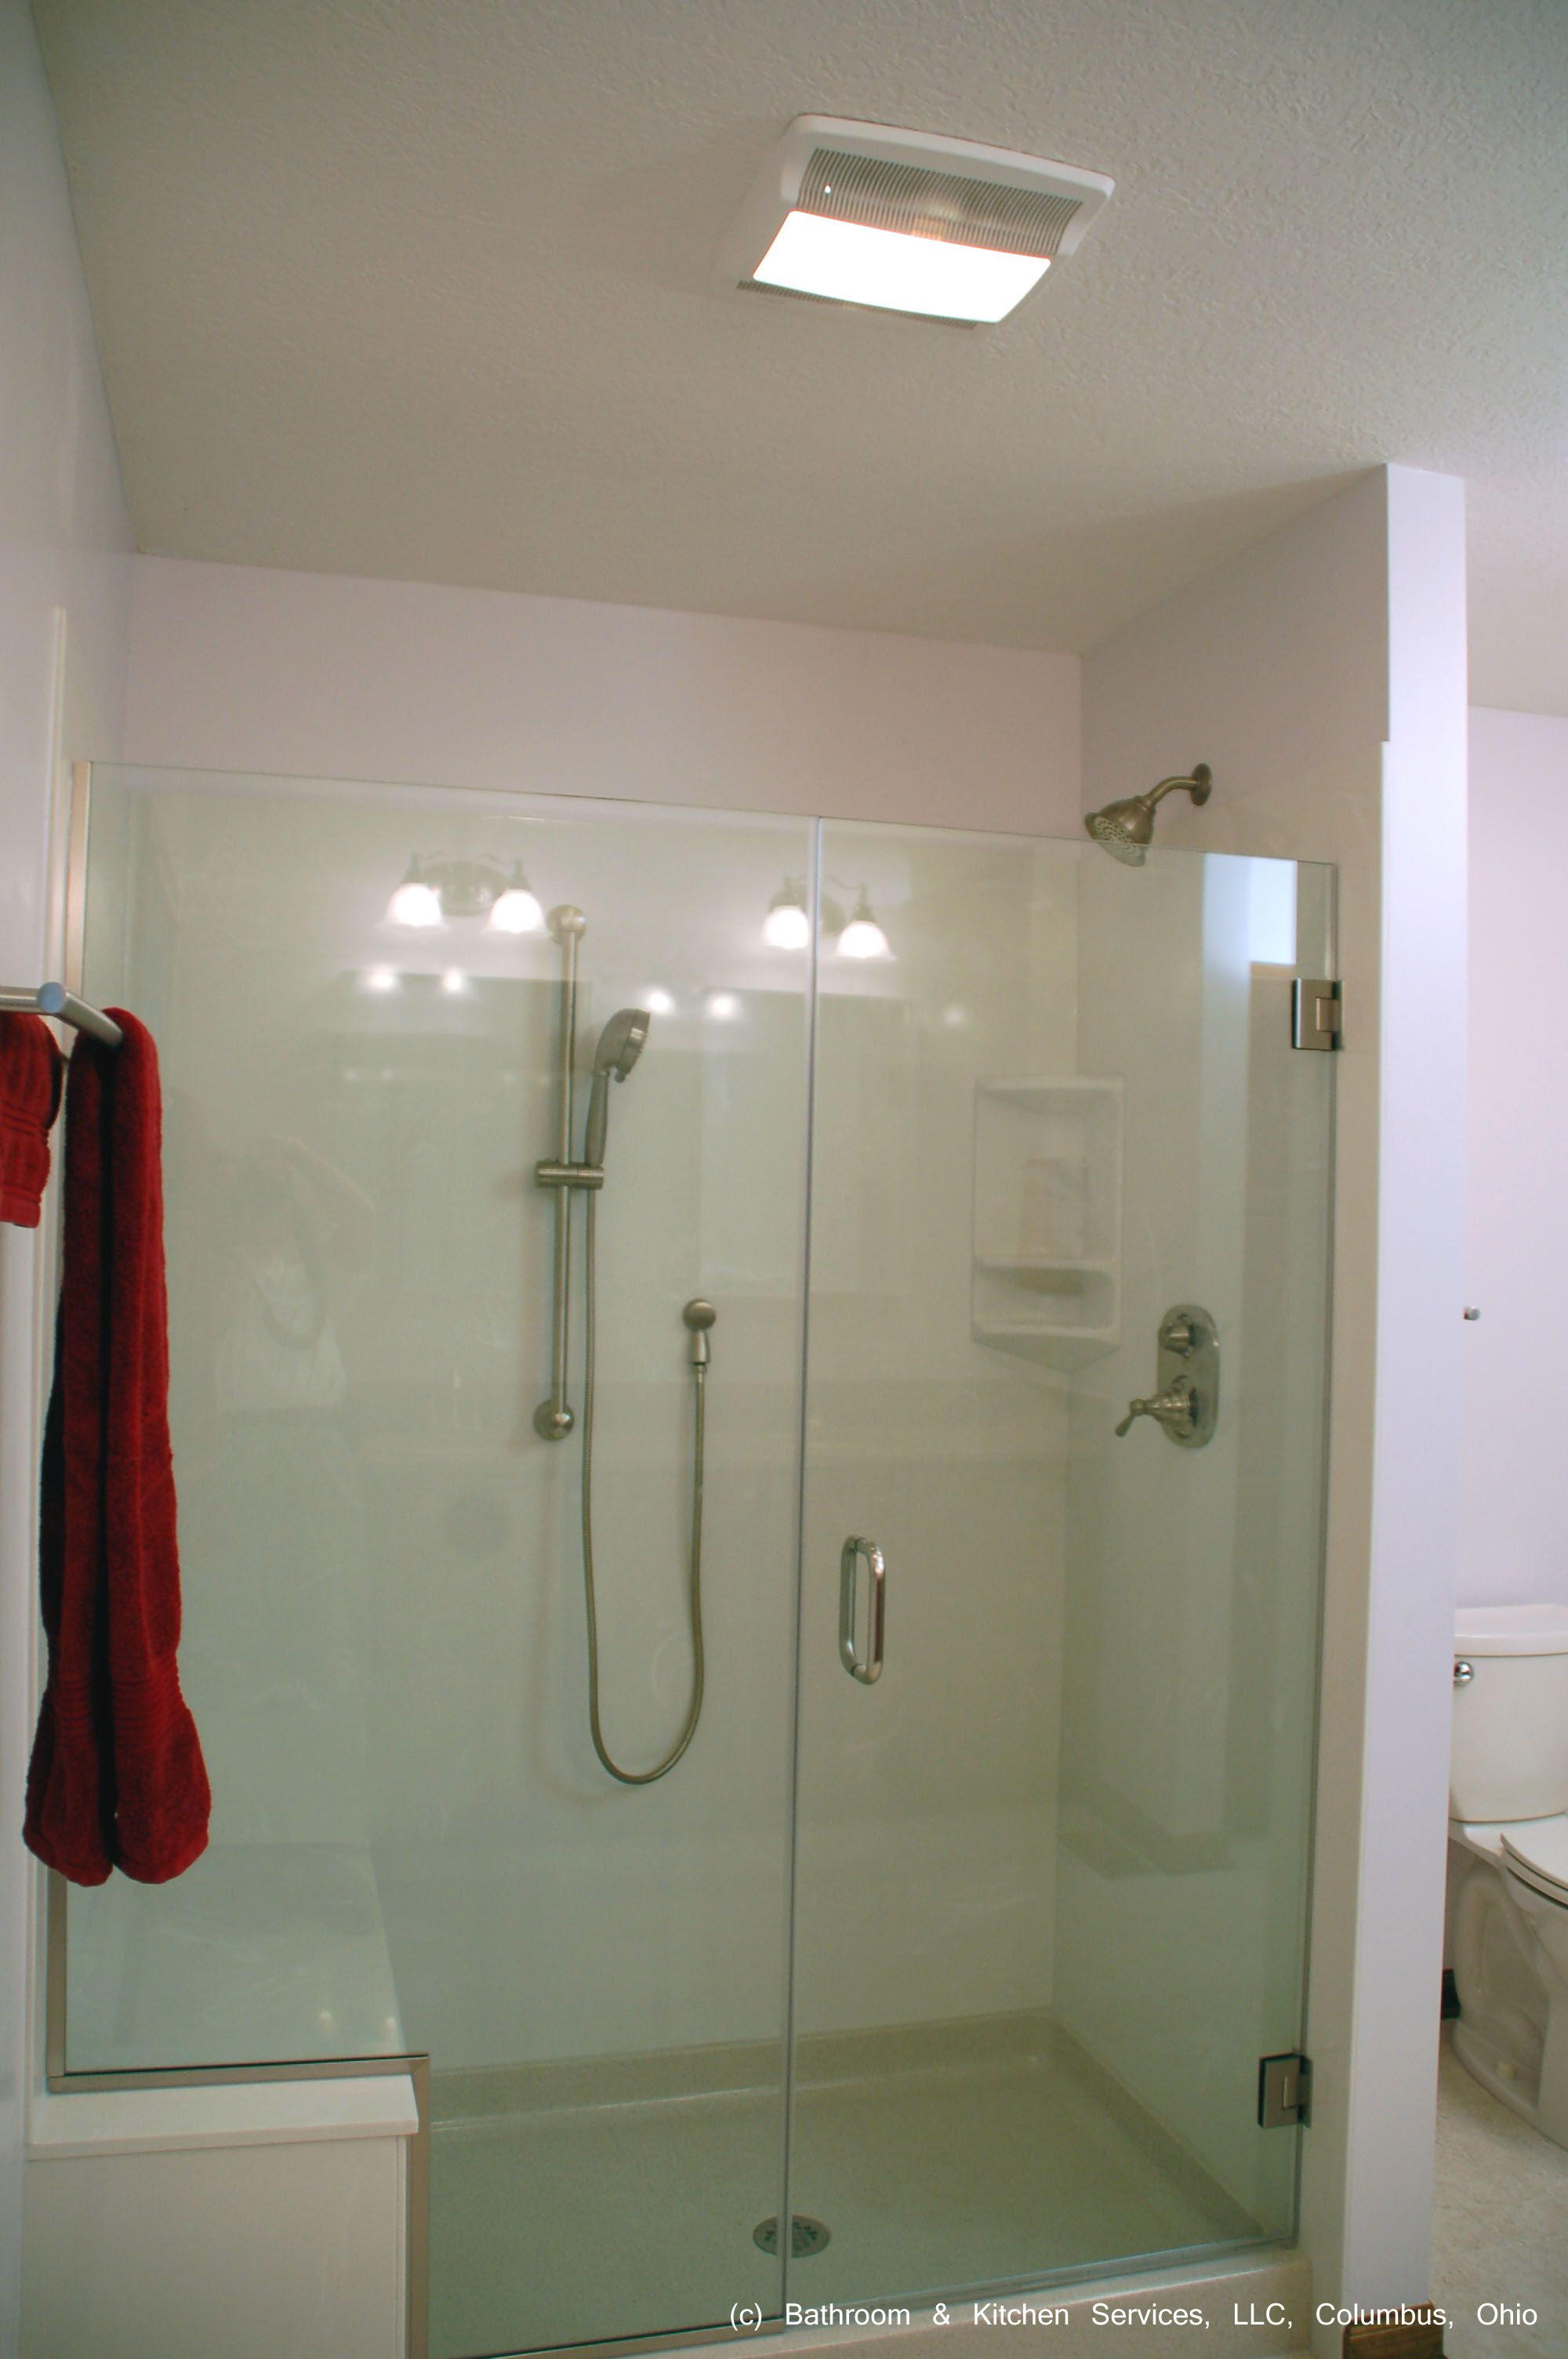 This Large Cultured Marble Shower Surround With Built In